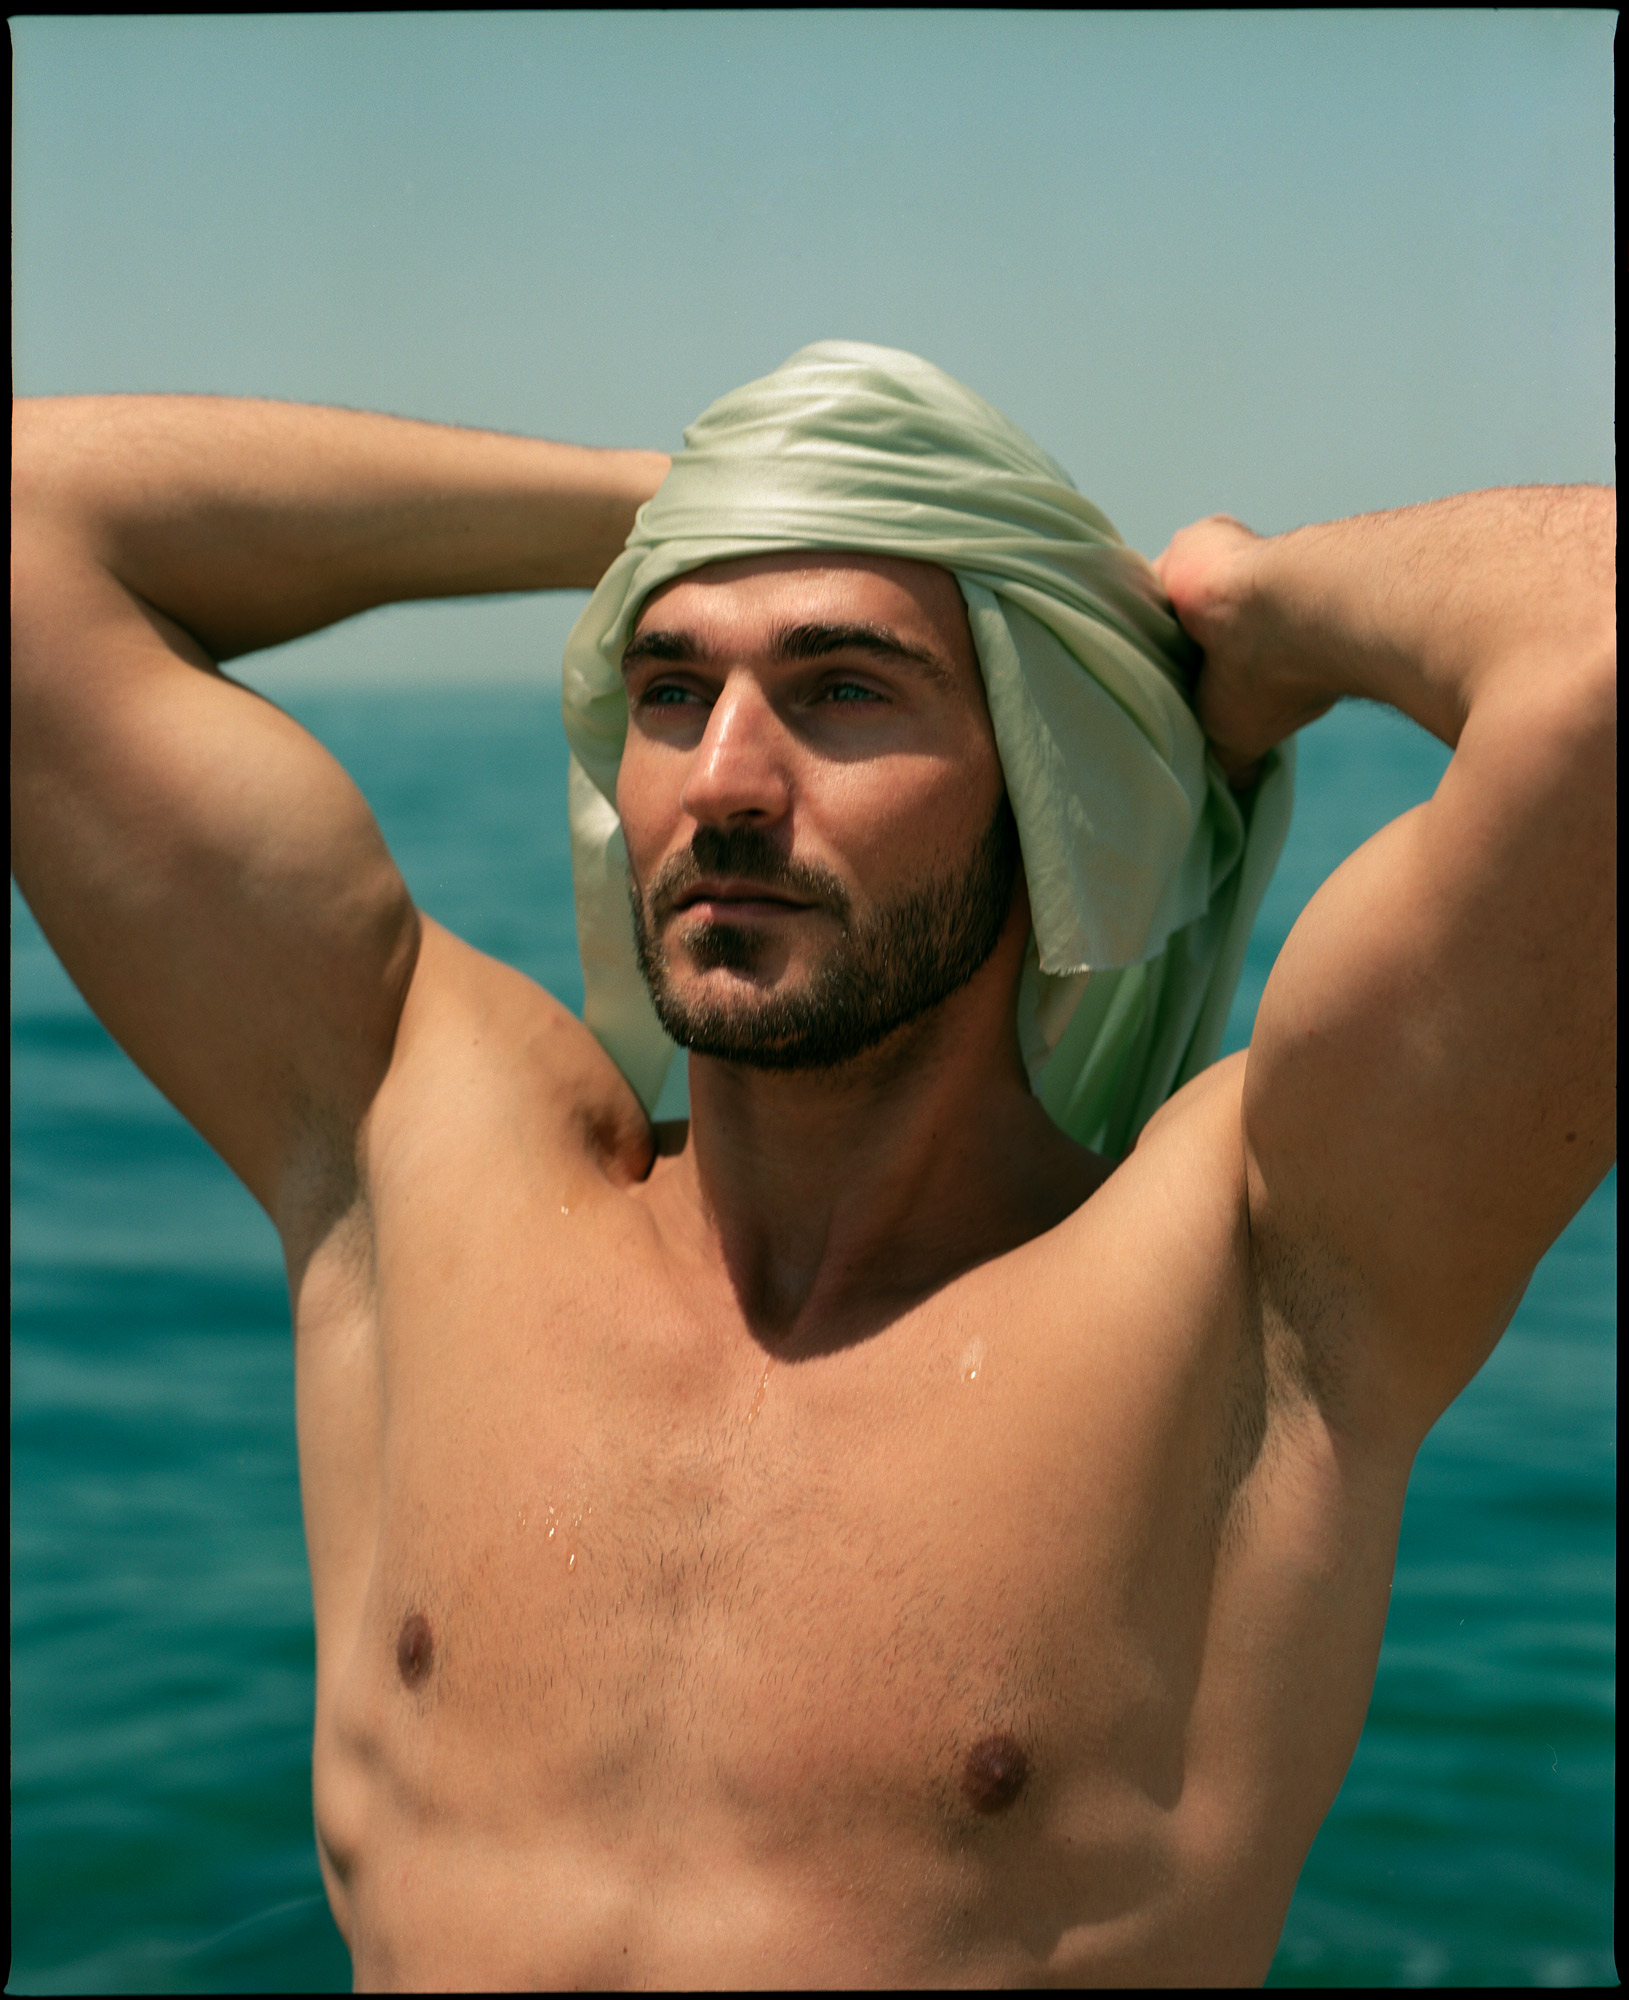 Slavko Moljac, in The Odyssey Of Mr Crusoe feature for Lewis Magazine, Photography By Ioannis Koussertari